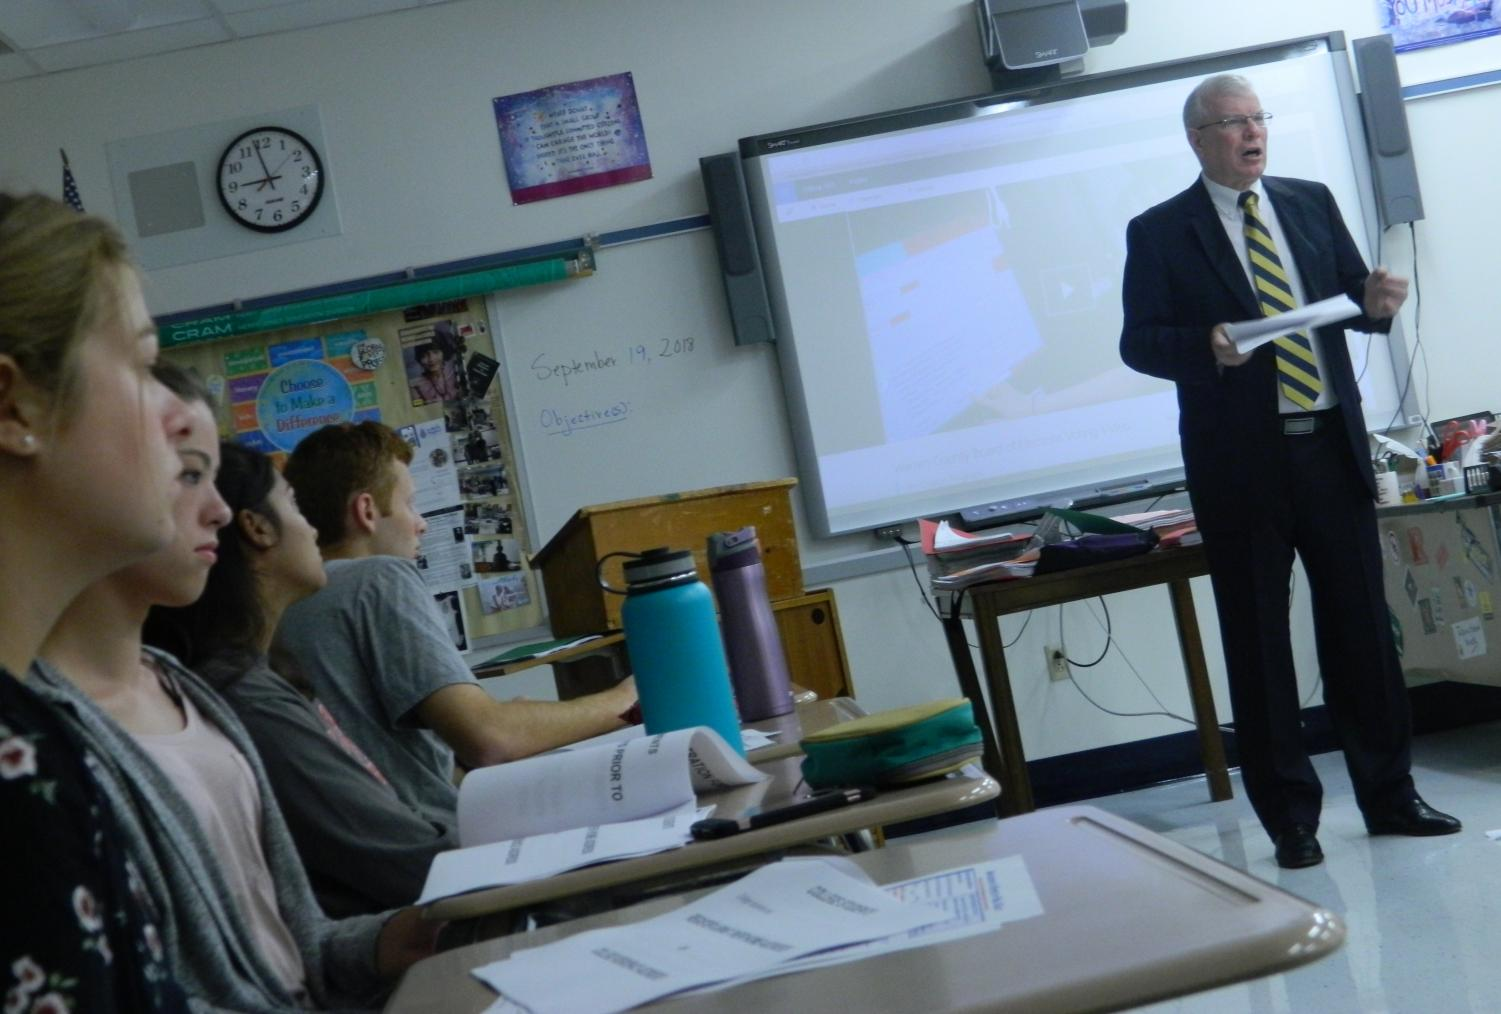 Election Administrator William Duffy walks students through different aspects of the voting registration process. (Photo by Kirsten Dorman)